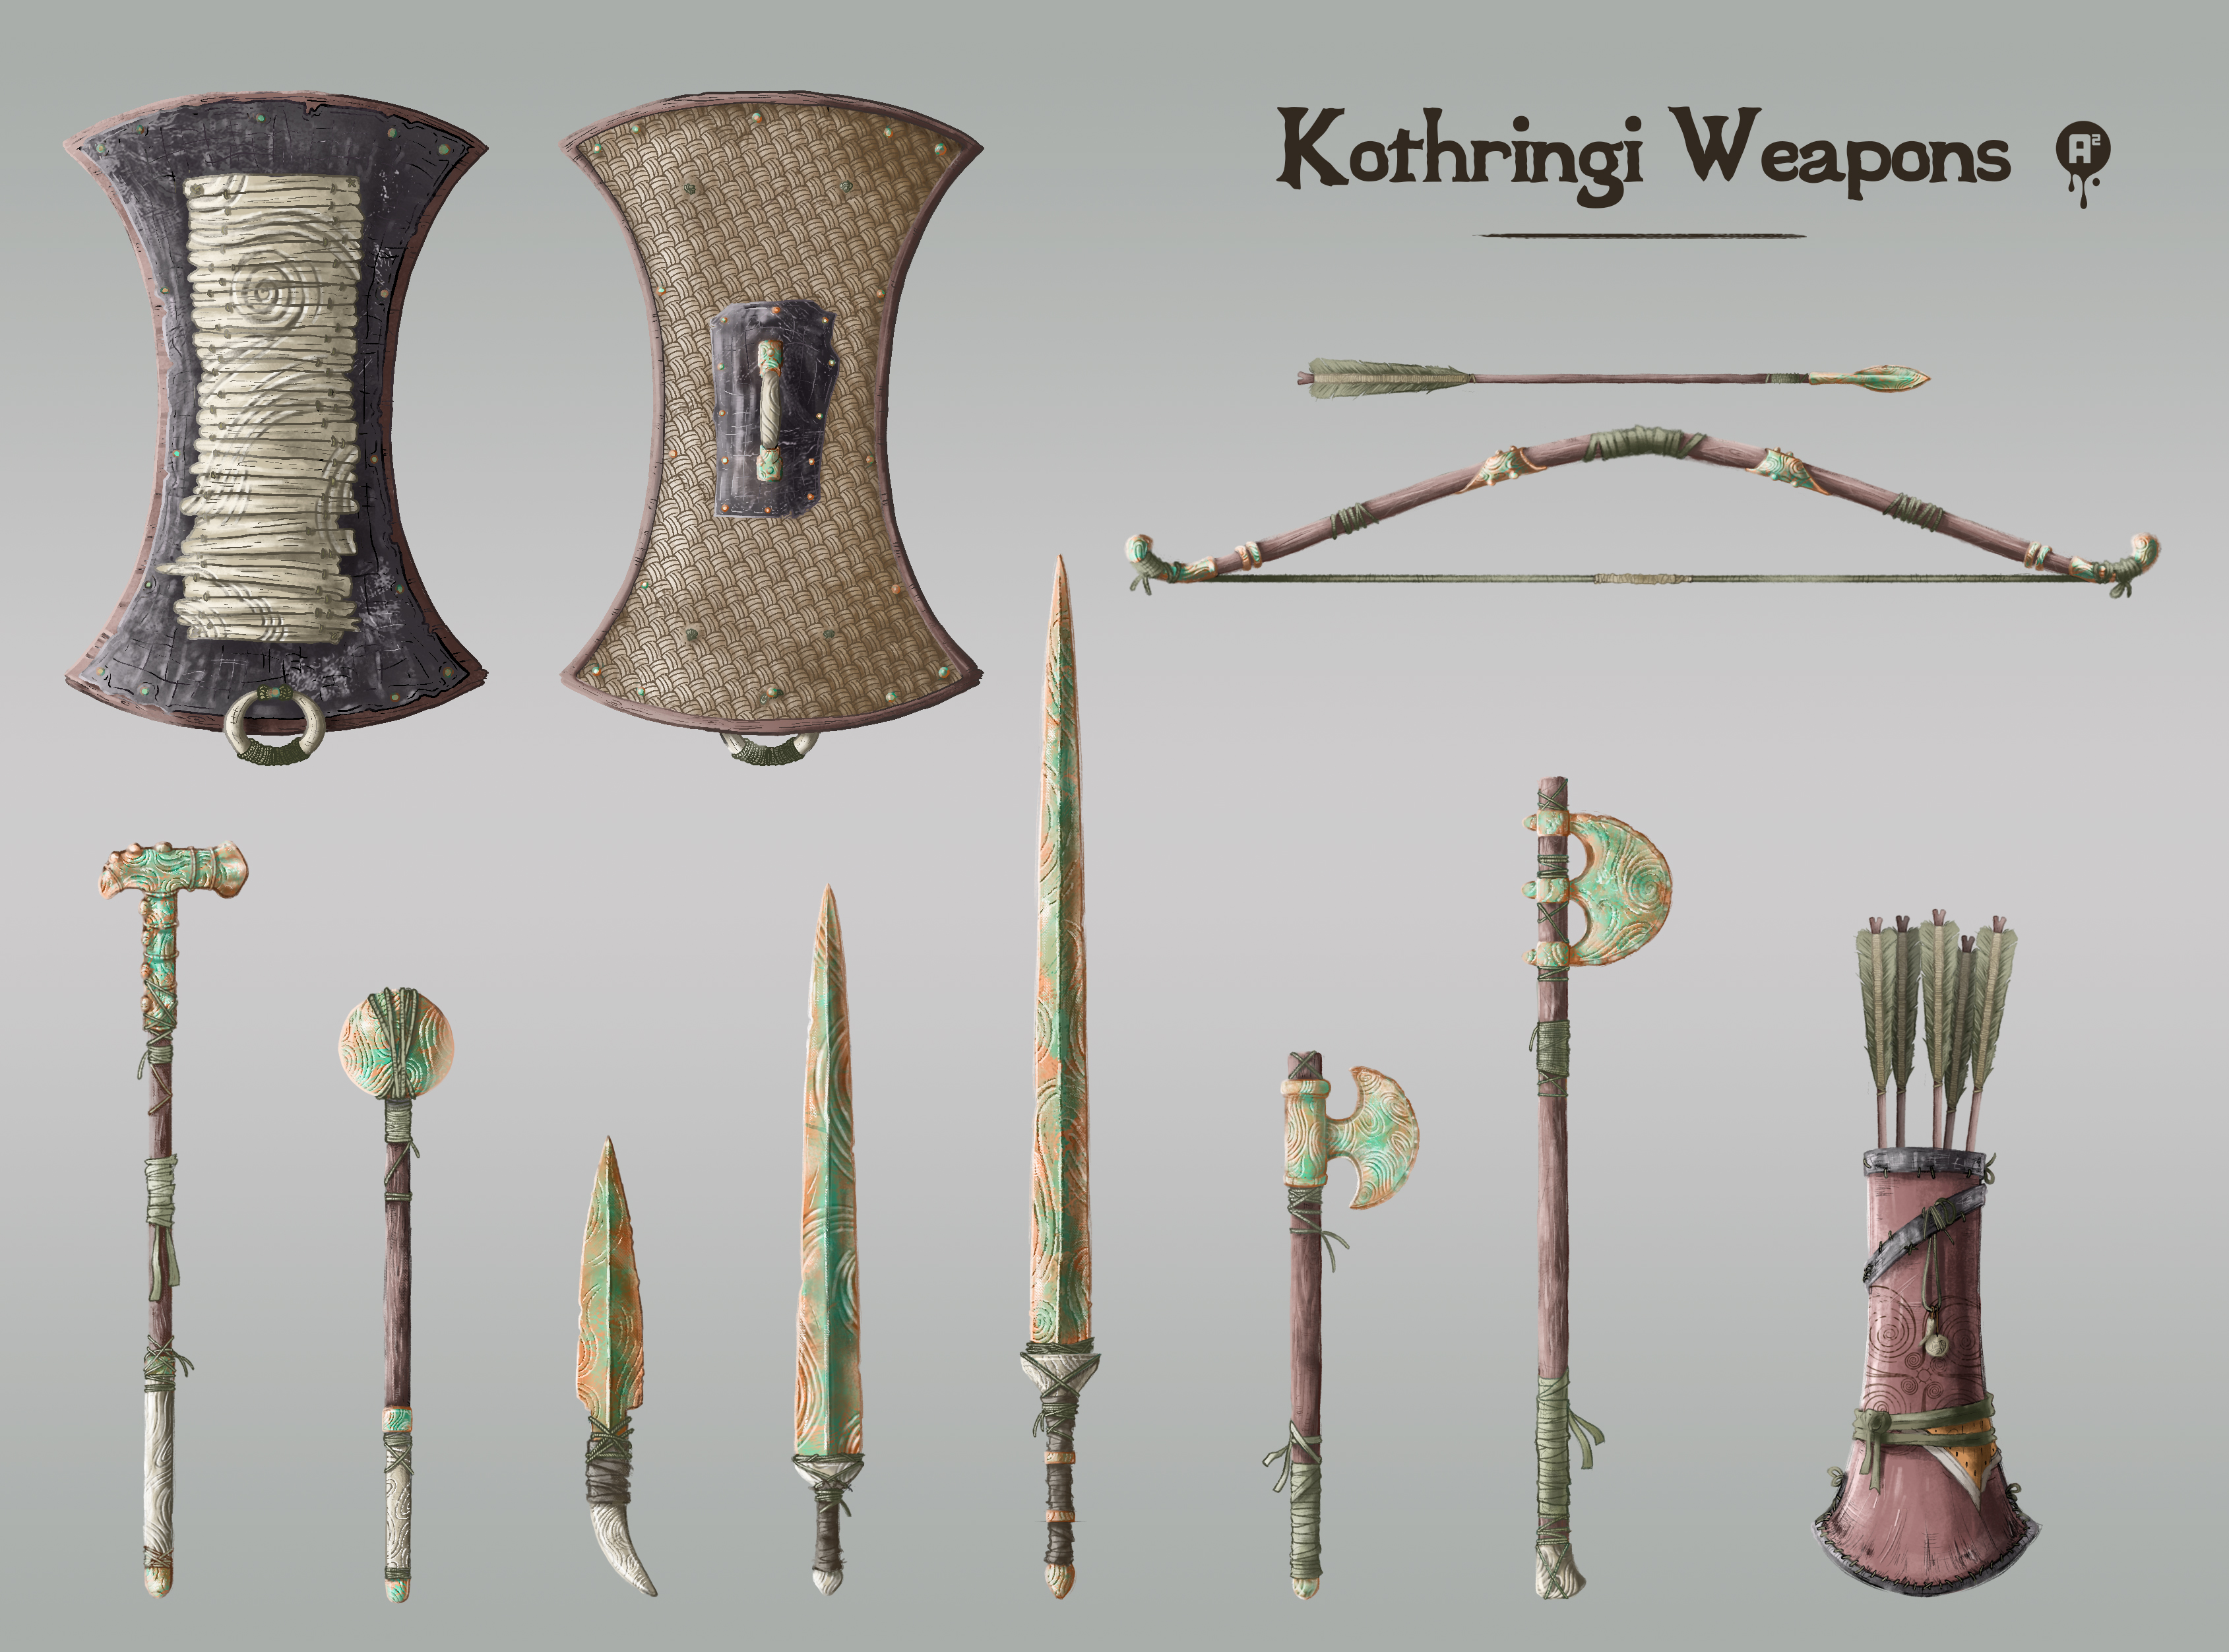 https://cdn.discordapp.com/attachments/416302349230014465/784120017531699260/Kothringi_weapons_family_oxided_by_Scarnor.jpg